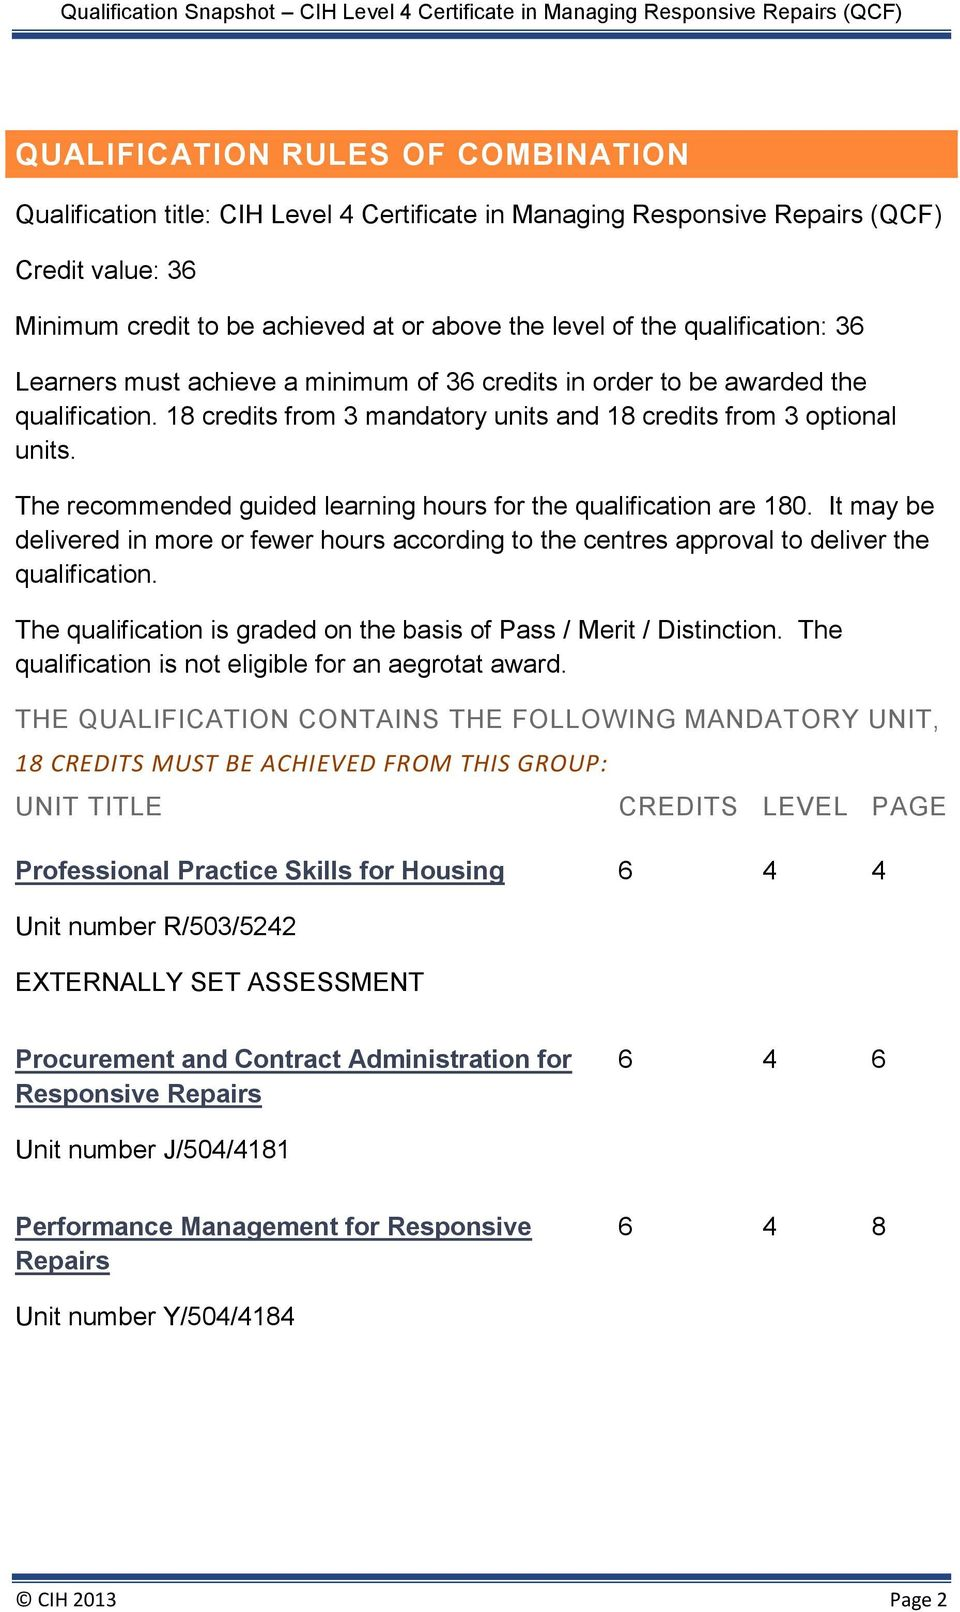 The recommended guided learning hours for the qualification are 180. It may be delivered in more or fewer hours according to the centres approval to deliver the qualification.